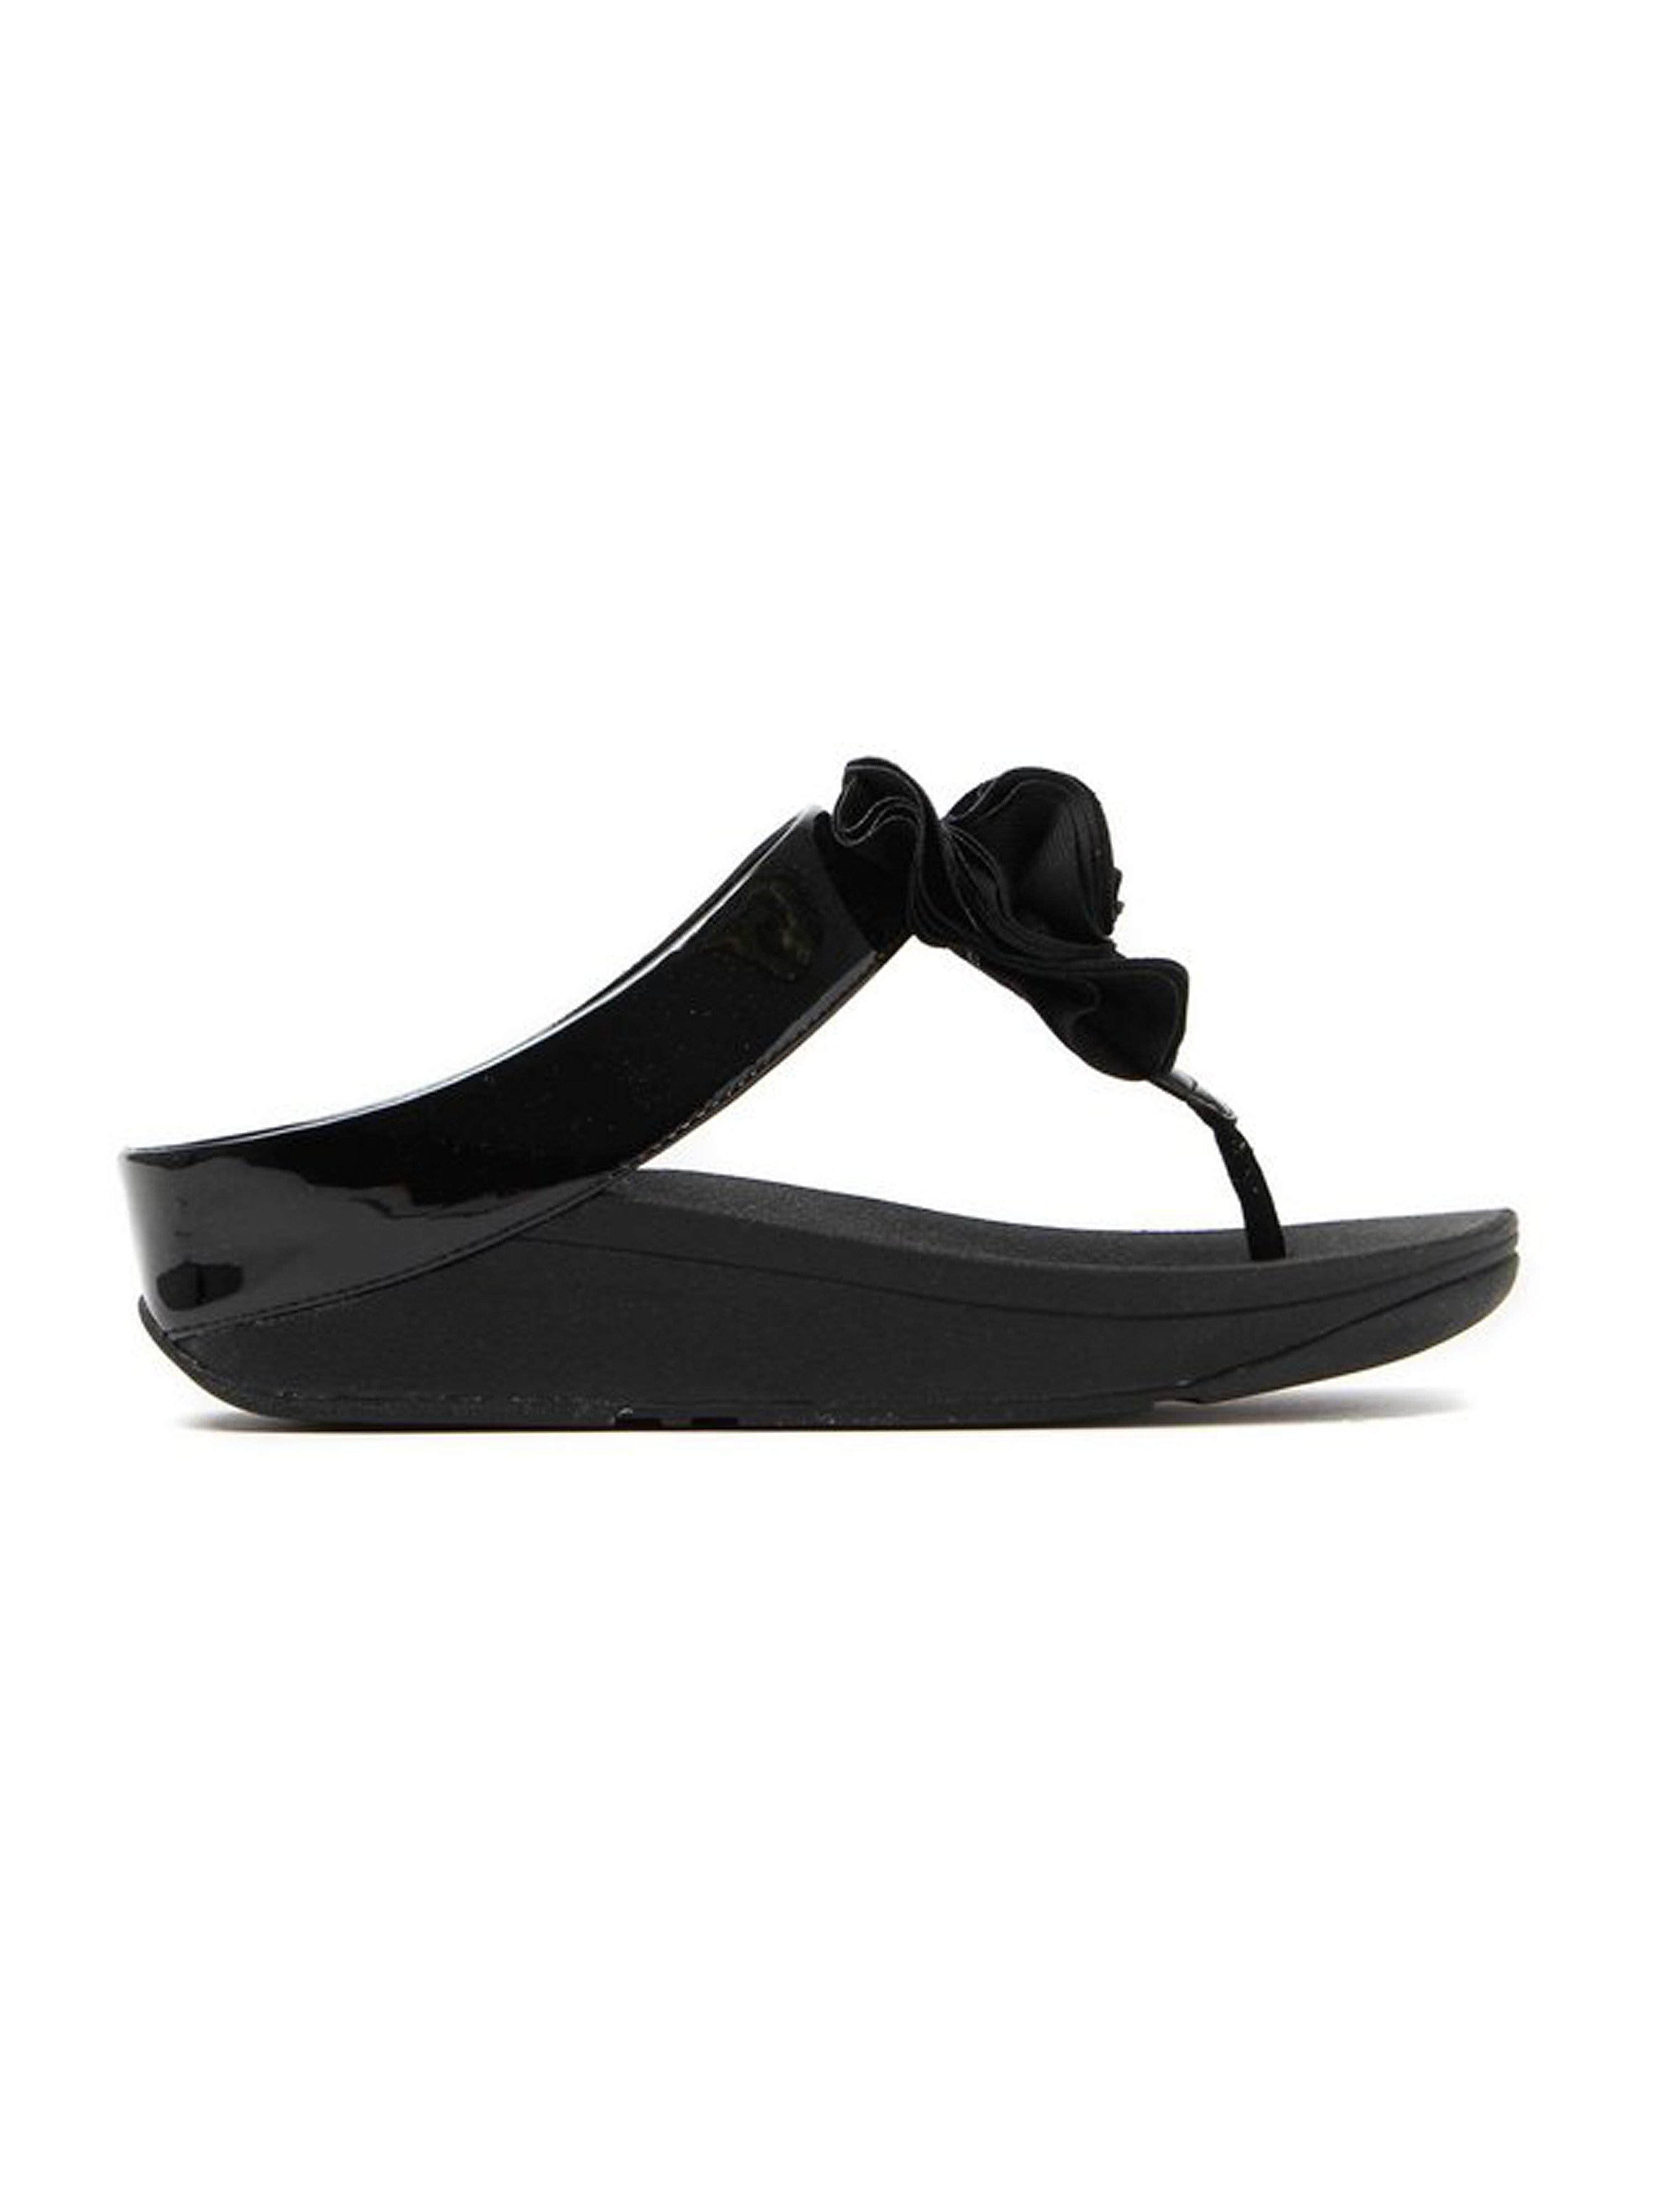 FitFlop Women's Patent Florrie Toe-Post Sandals - Black